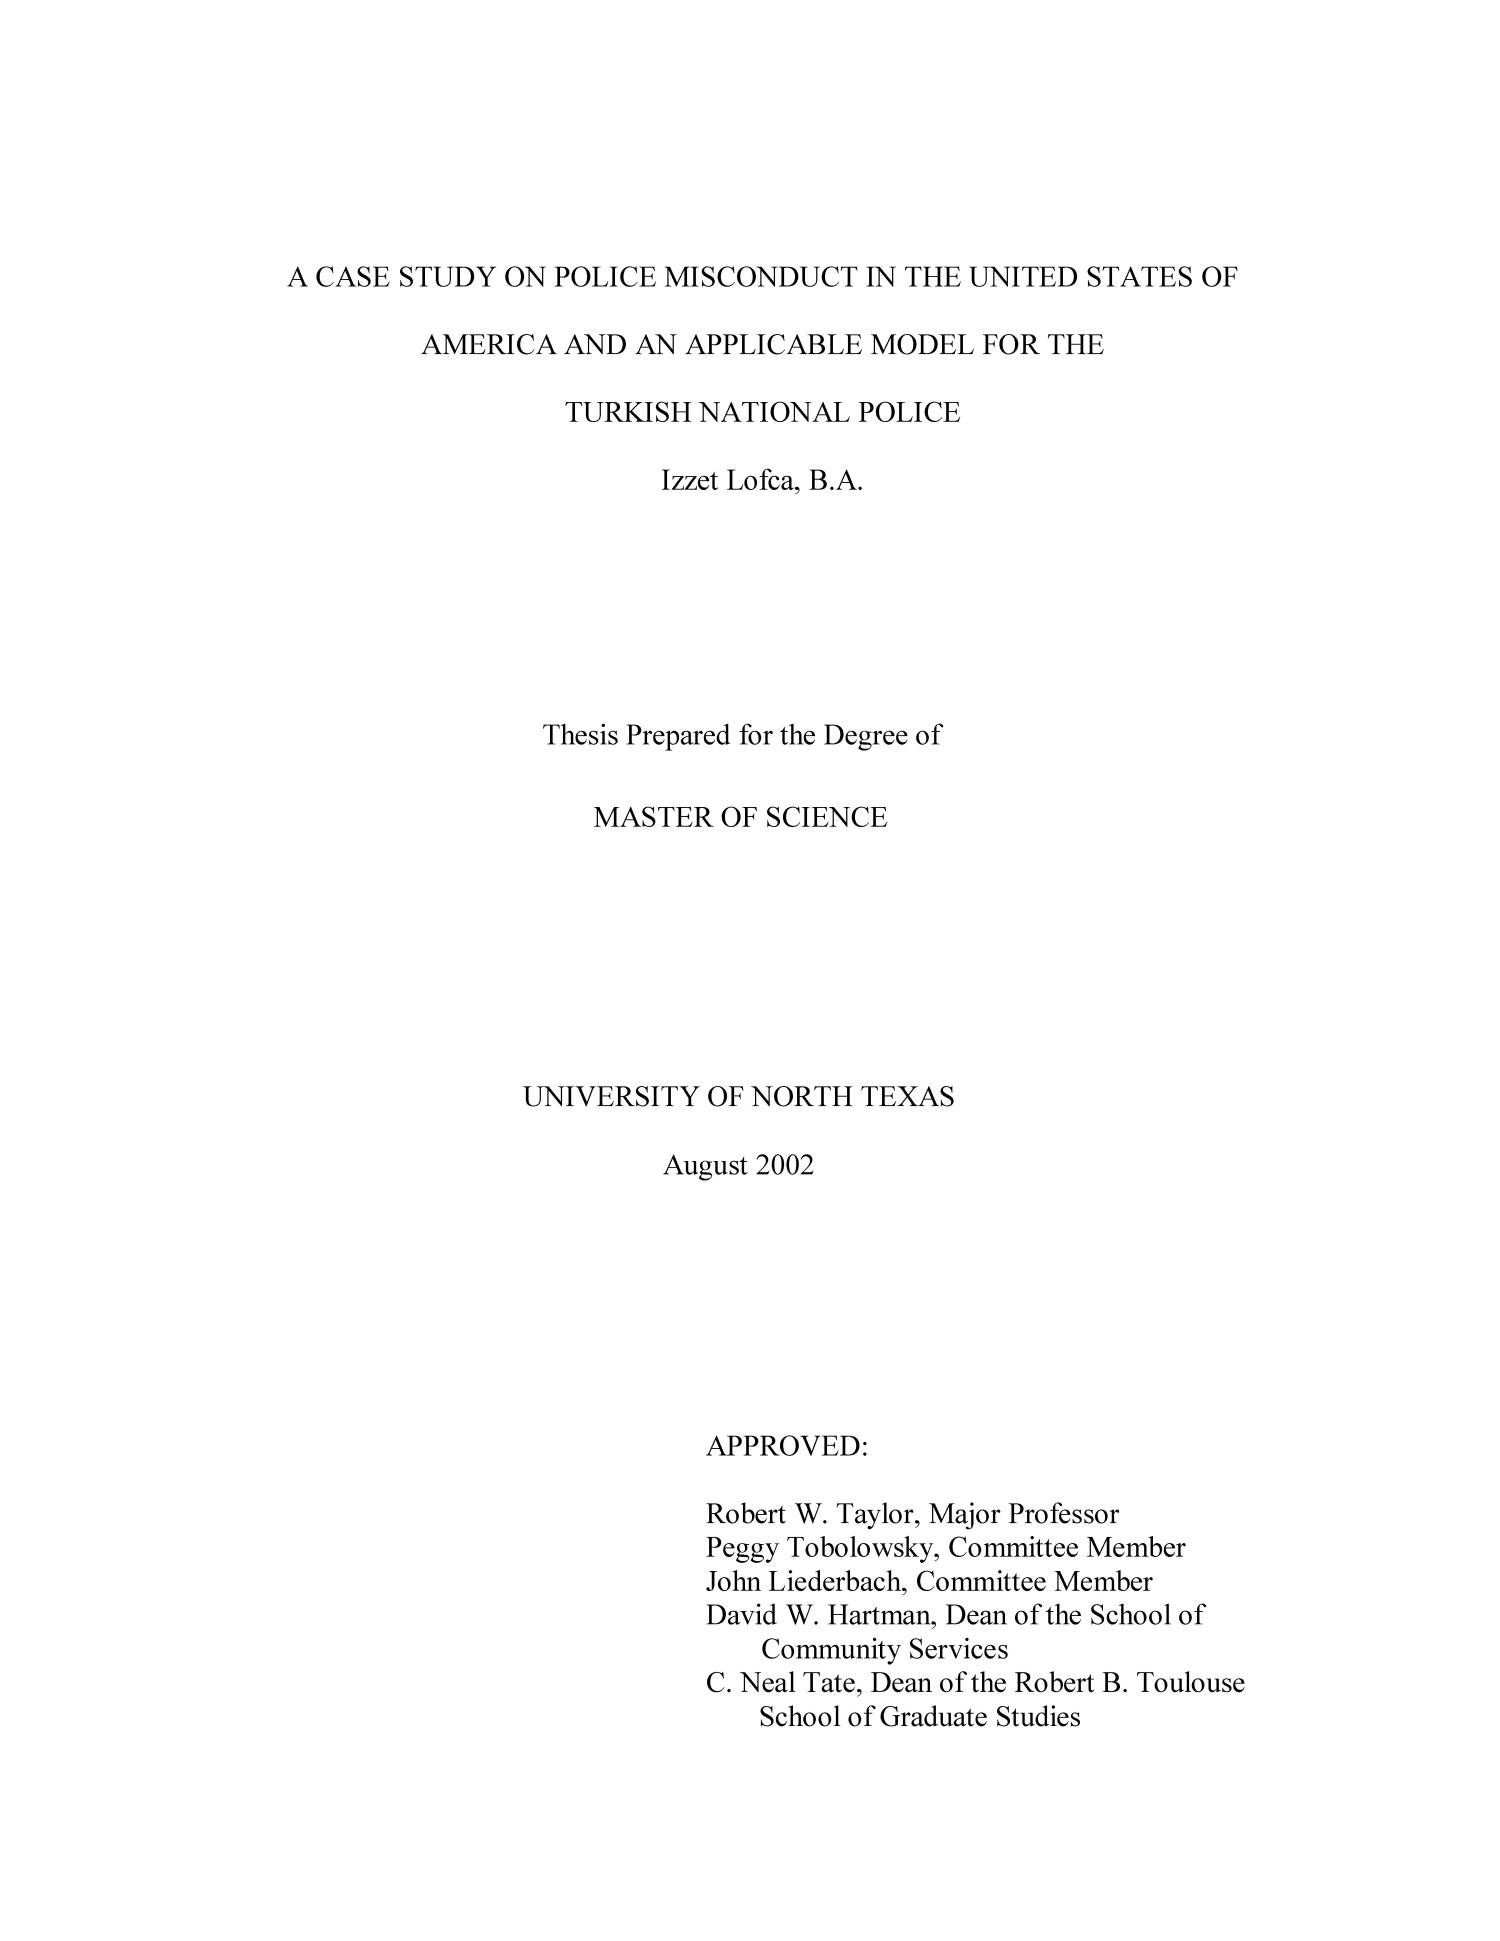 A Case Study on Police Misconduct in the United States of America and an Applicable Model for the Turkish National Police.                                                                                                      Title Page